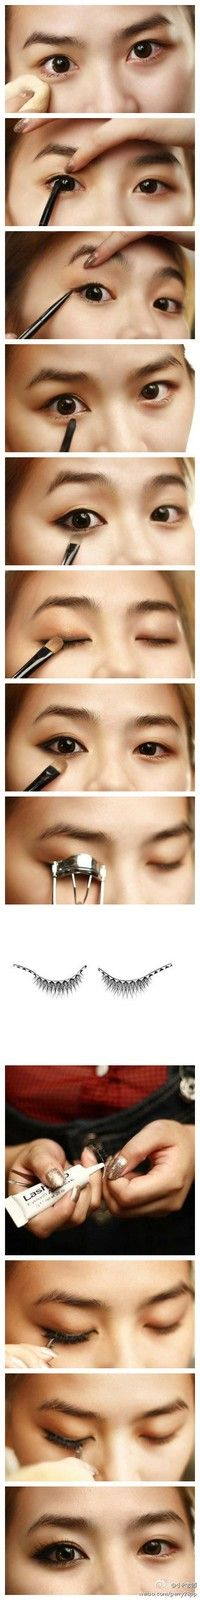 Asian make up-- or for girls w/ small or squinted eyes, how to brighten & enlarge